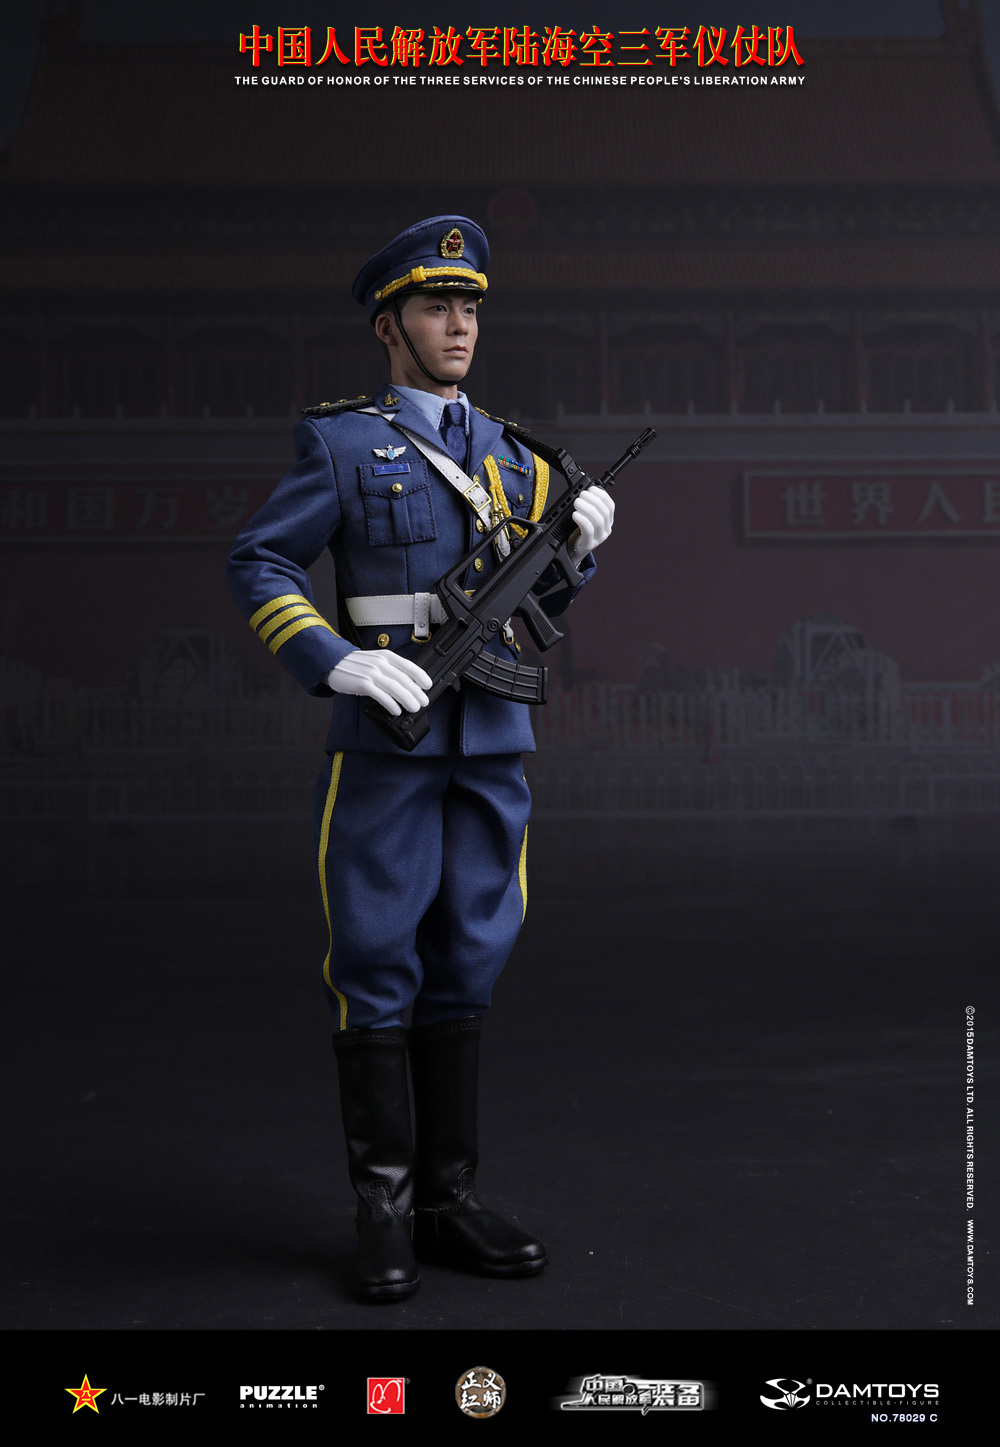 DAM TOYS 1:6 PLA Chinese Navy Honor Guard Standard Bearer Action Figure 78029b